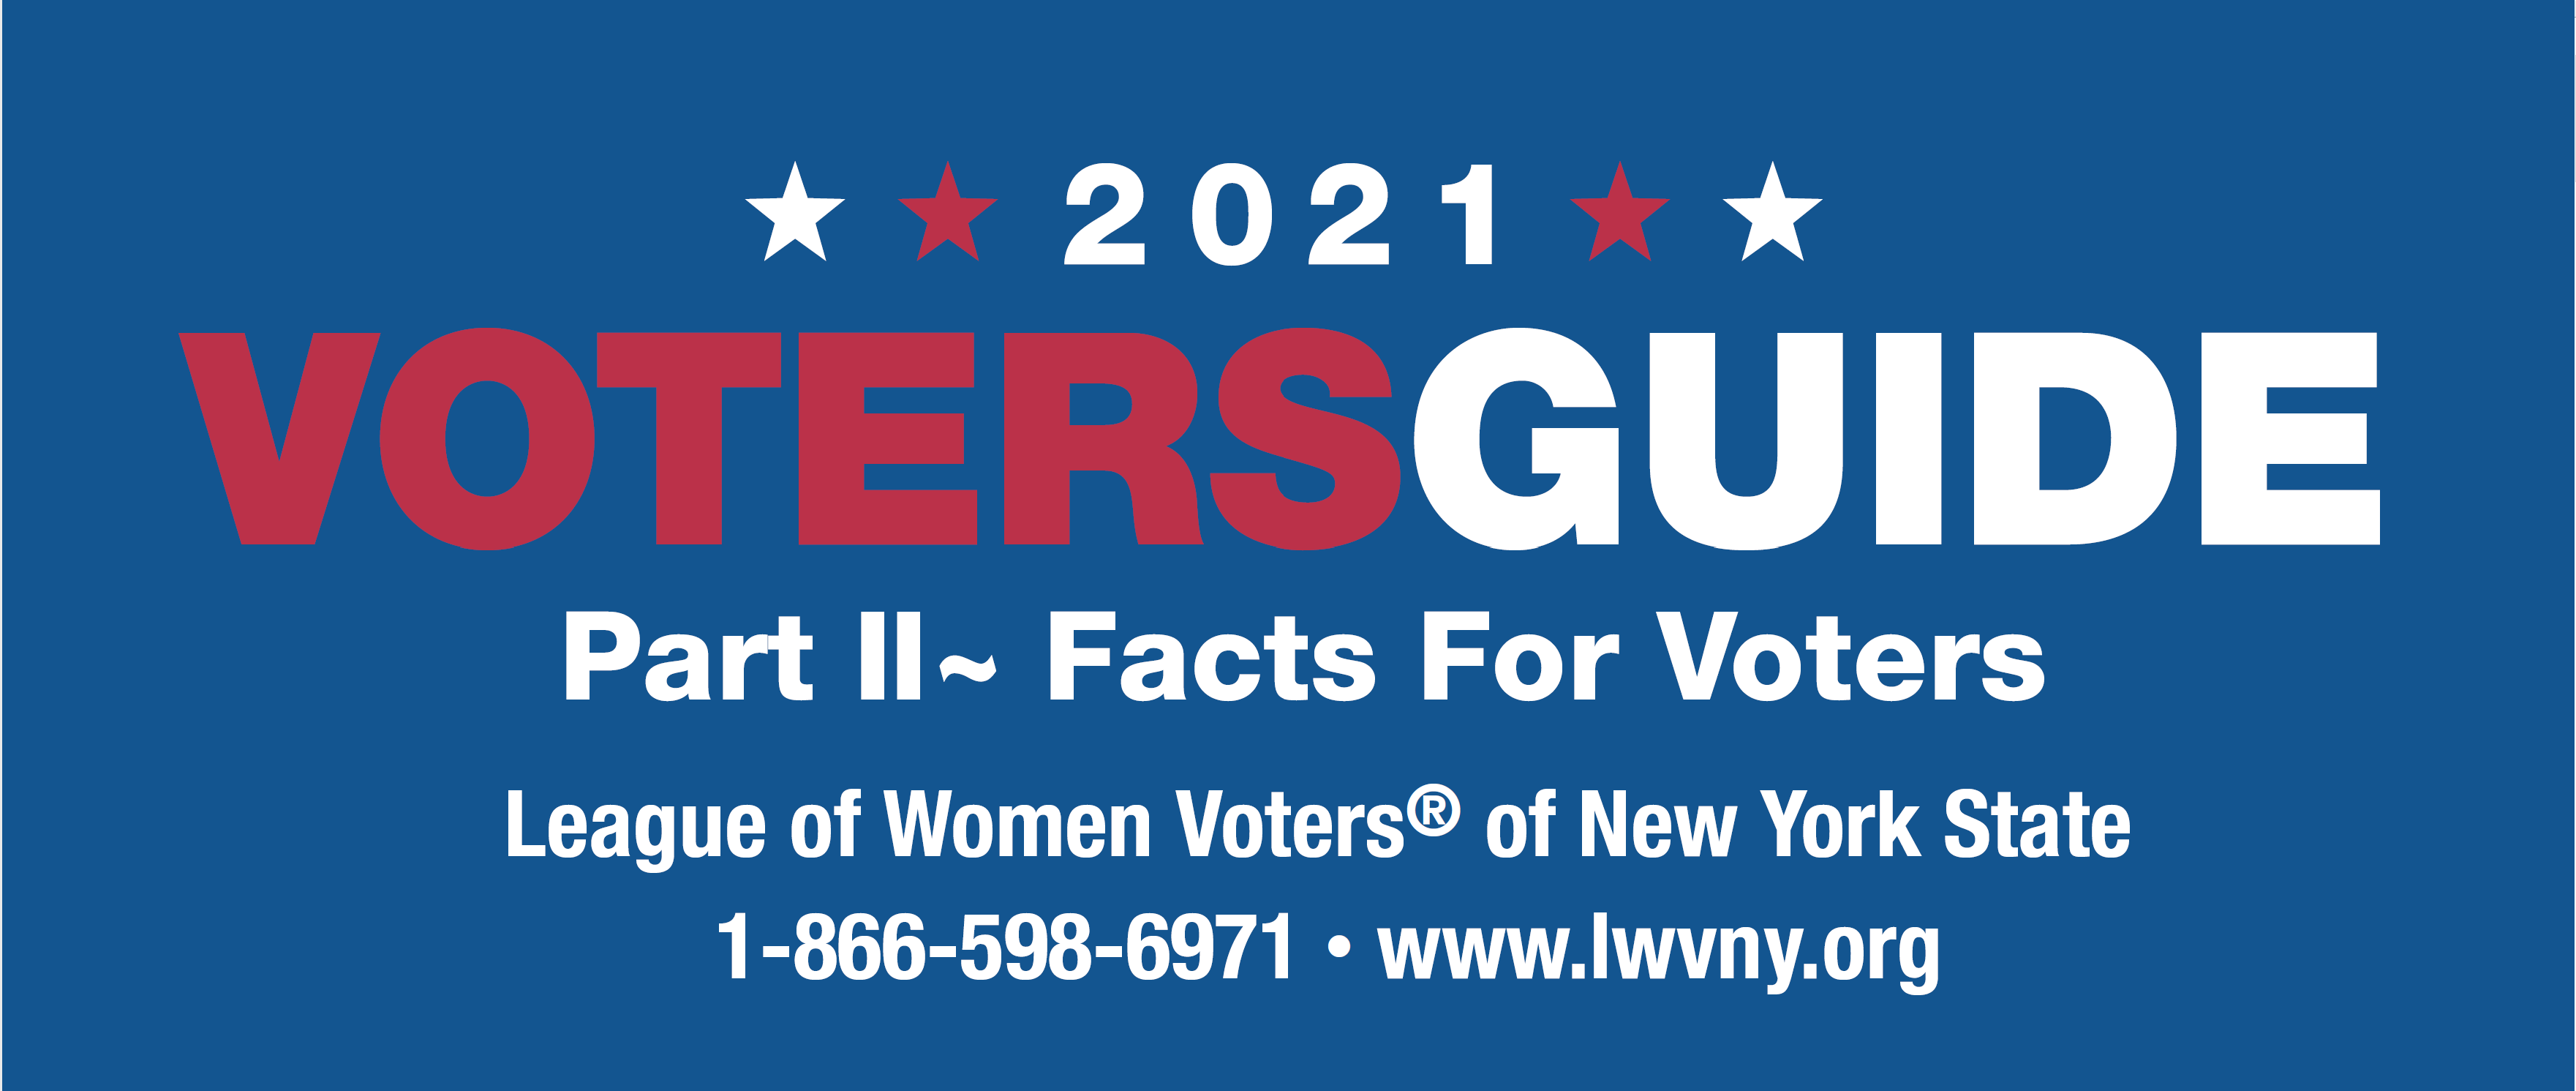 2021 Voters Guide Part II